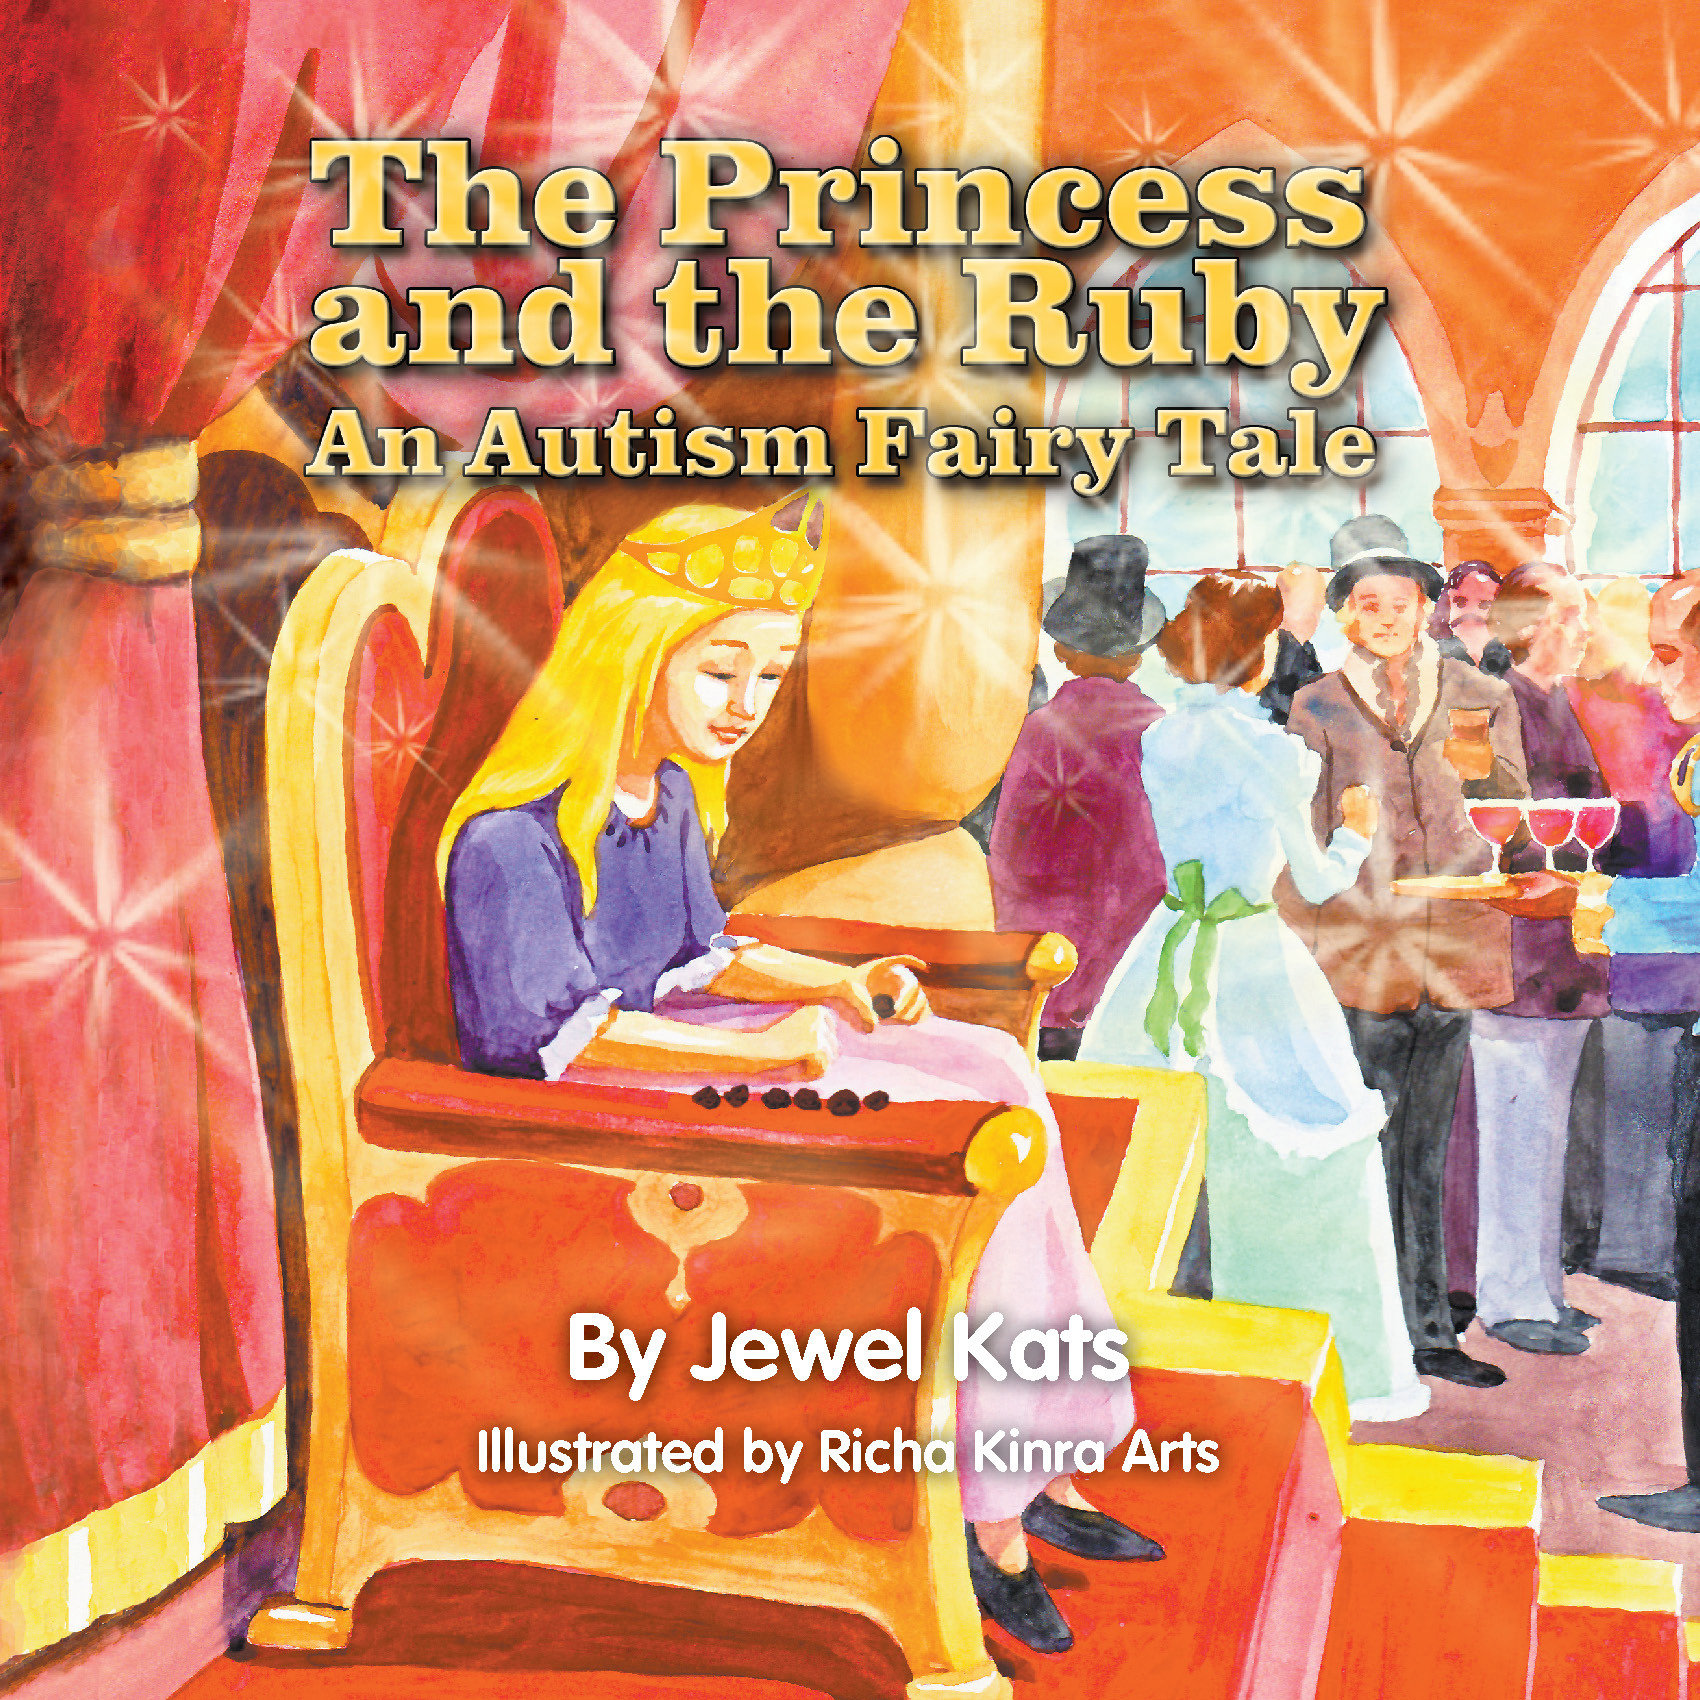 The Princess and the Ruby: An Autism Fairy Tale 978-1-61599-175-4